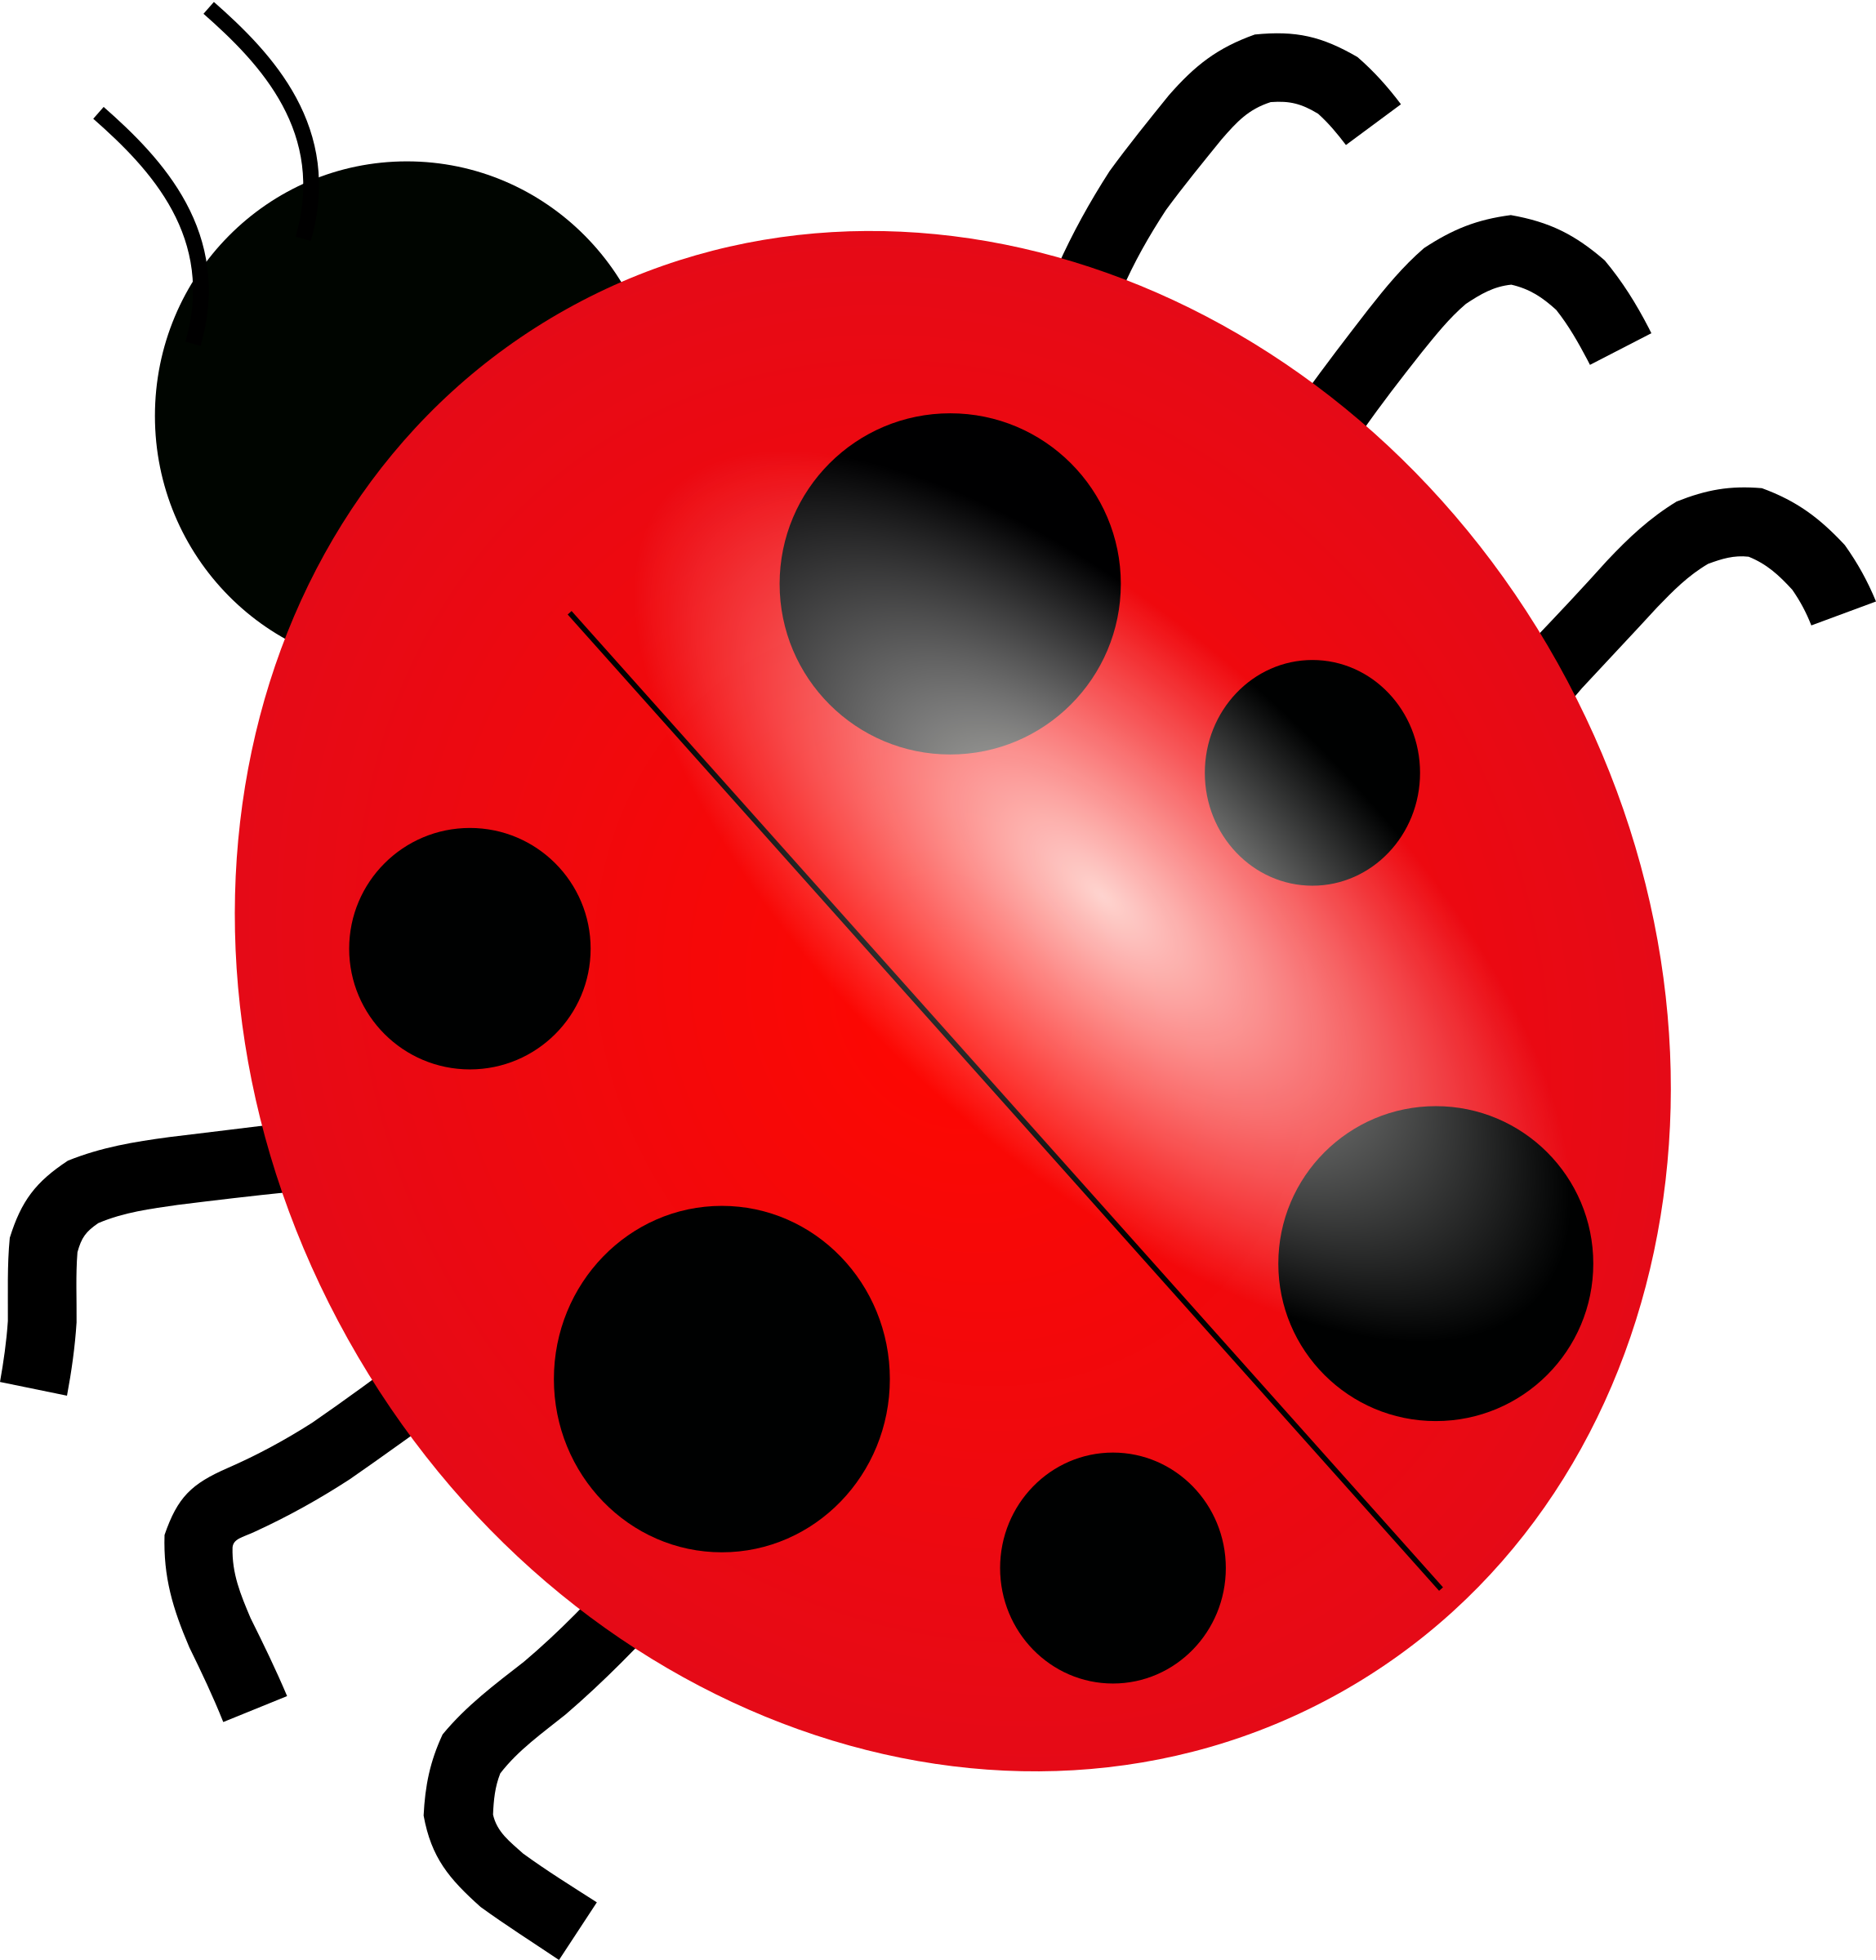 Ladybug big image png. Ladybugs clipart red animal